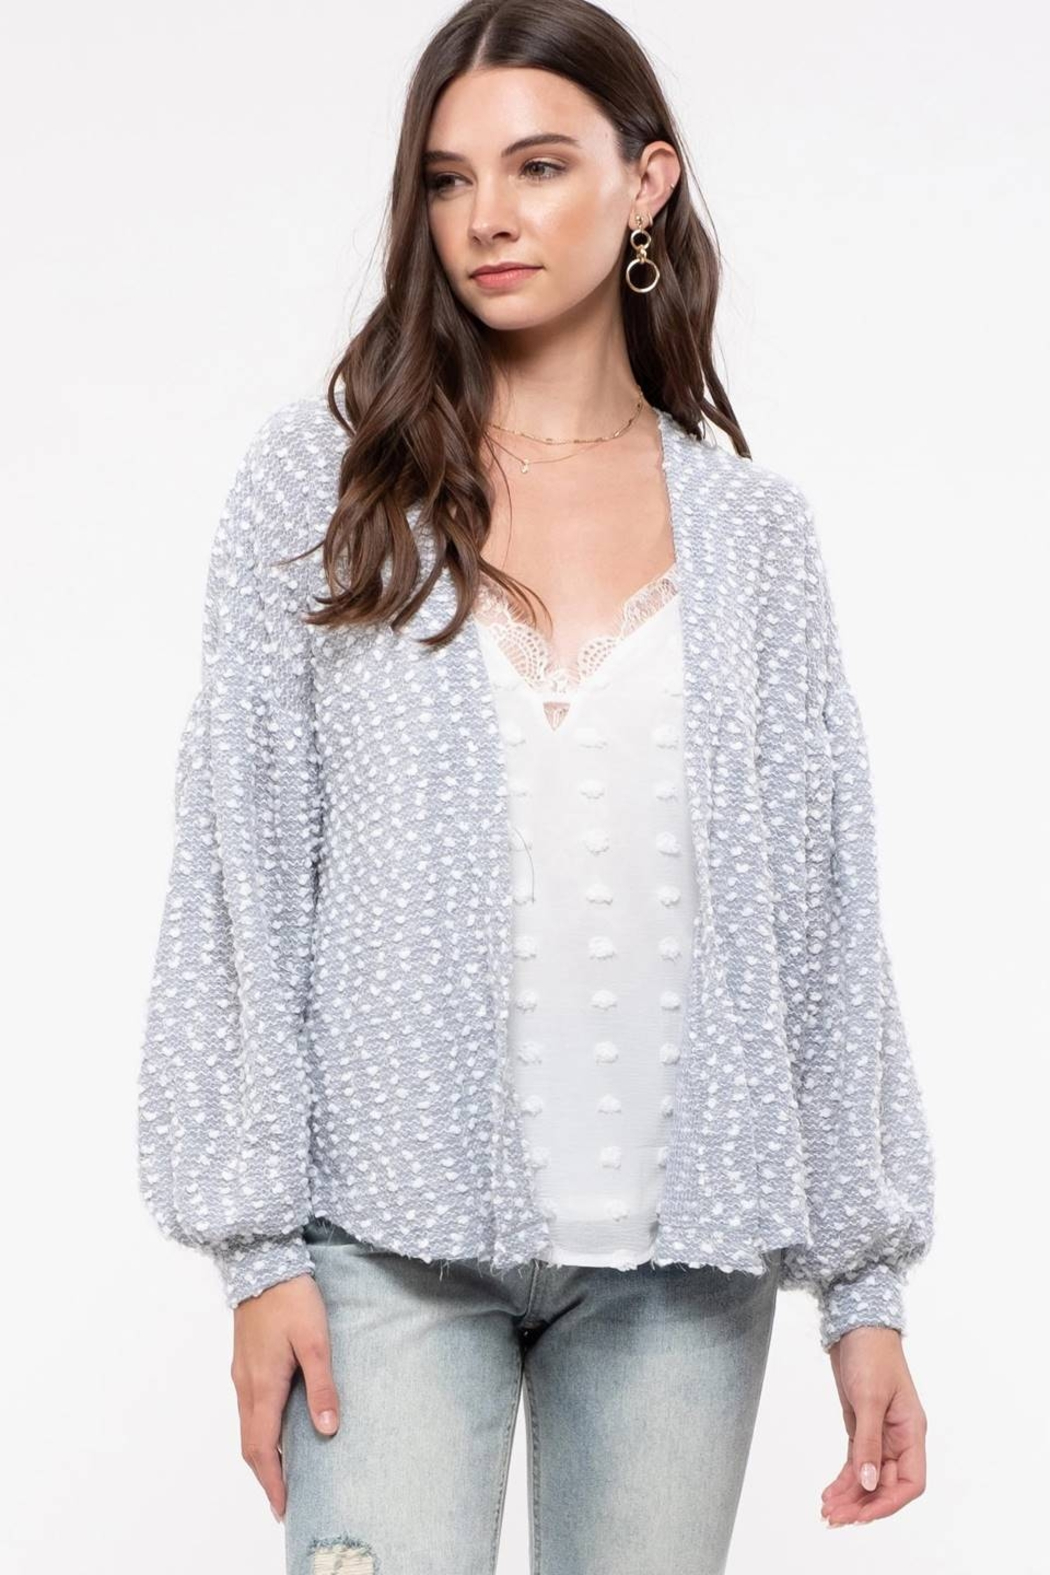 blu Pepper  Grey Swiss Dot Knit Cardigan - Front Cropped Image